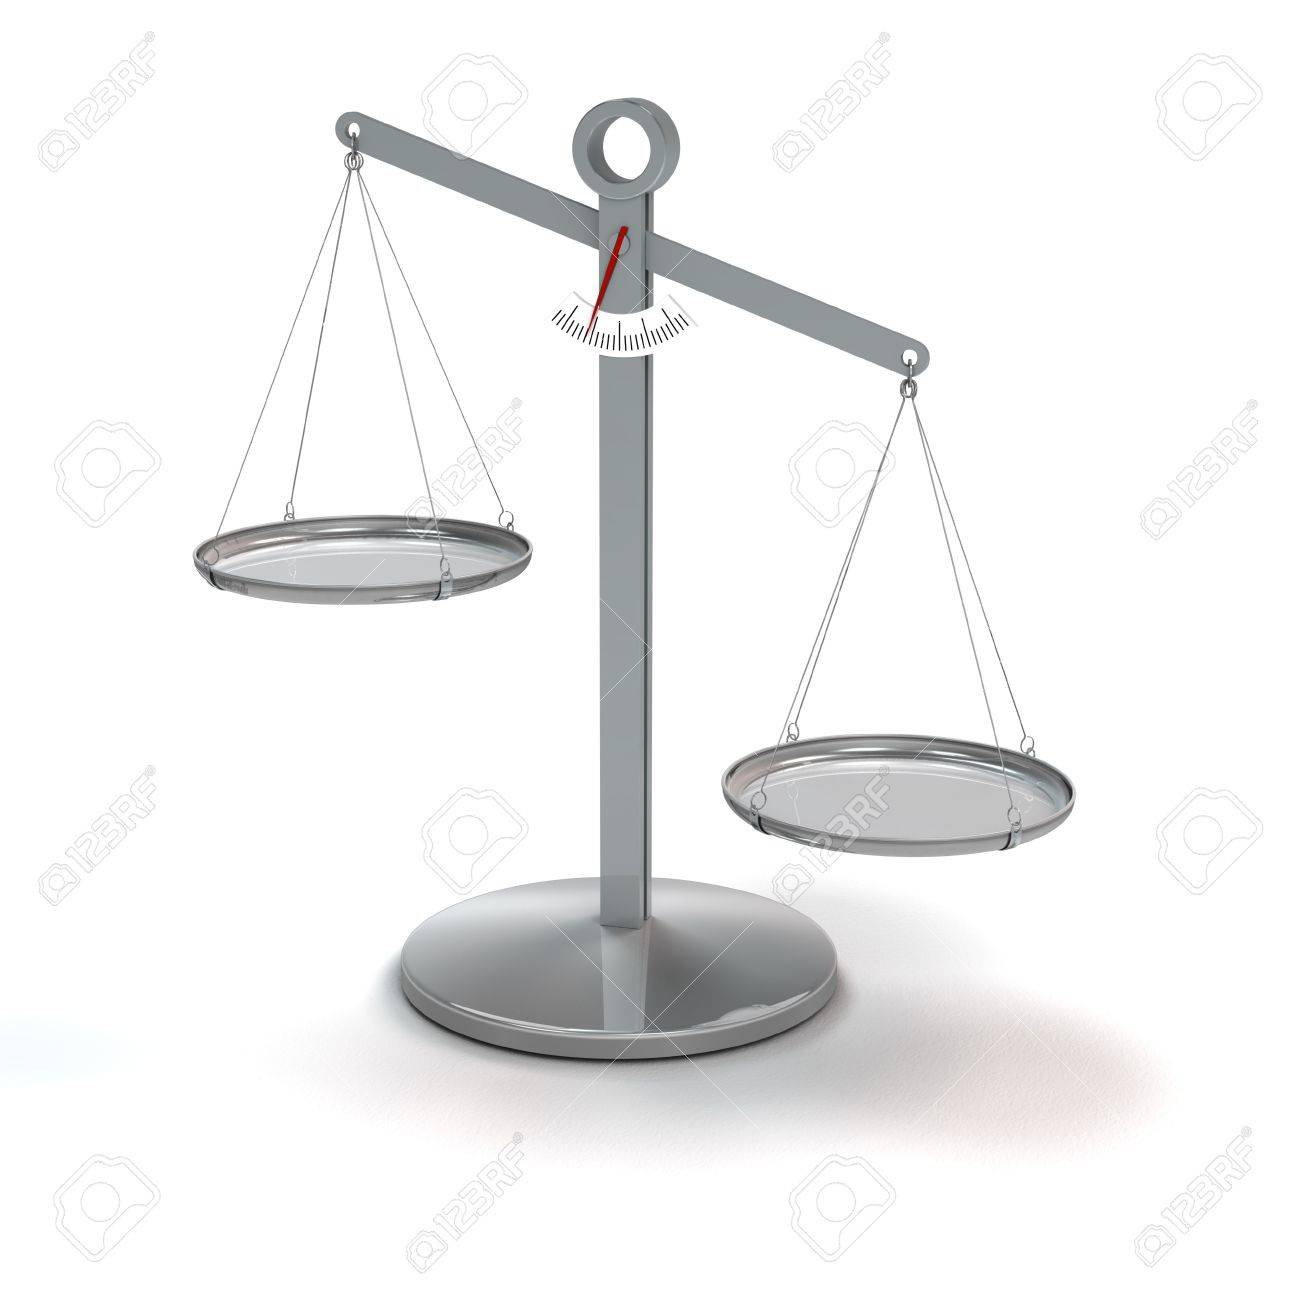 scale not in balance - rendering Stock Photo - 16262909